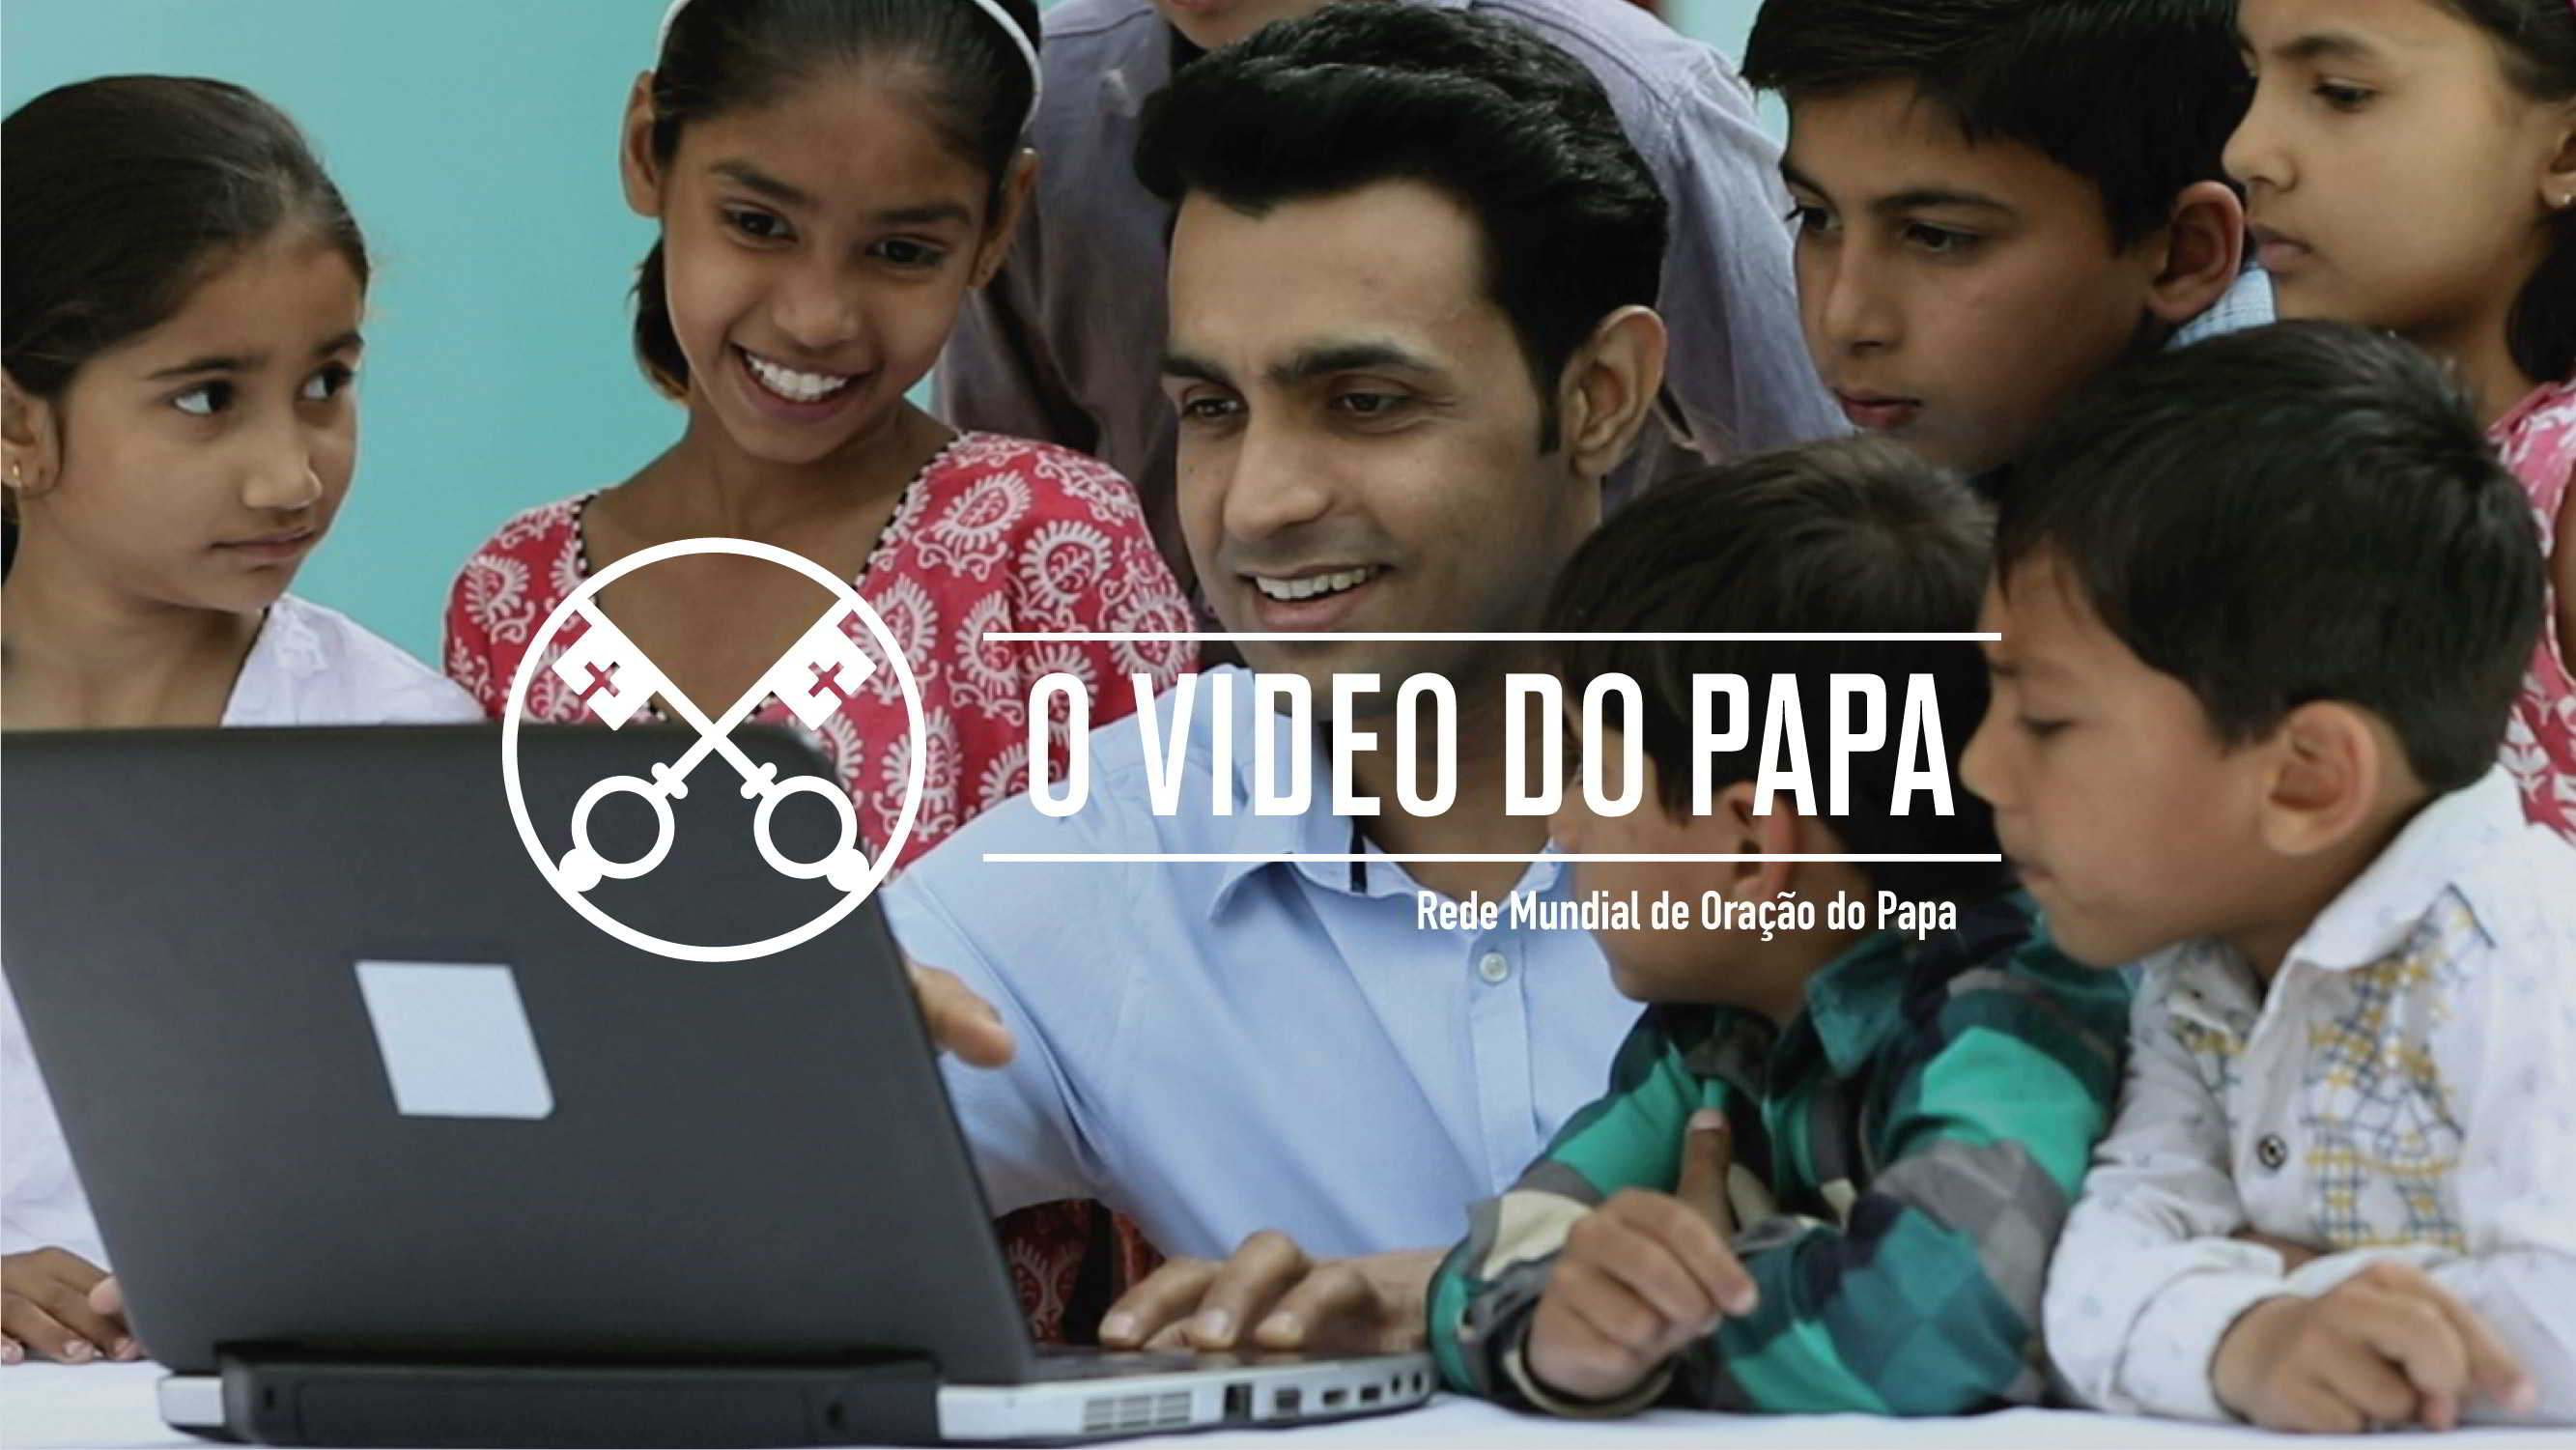 Official-Image-The-Pope-Video-6-JUN-Social-Networks-5-Portuguese